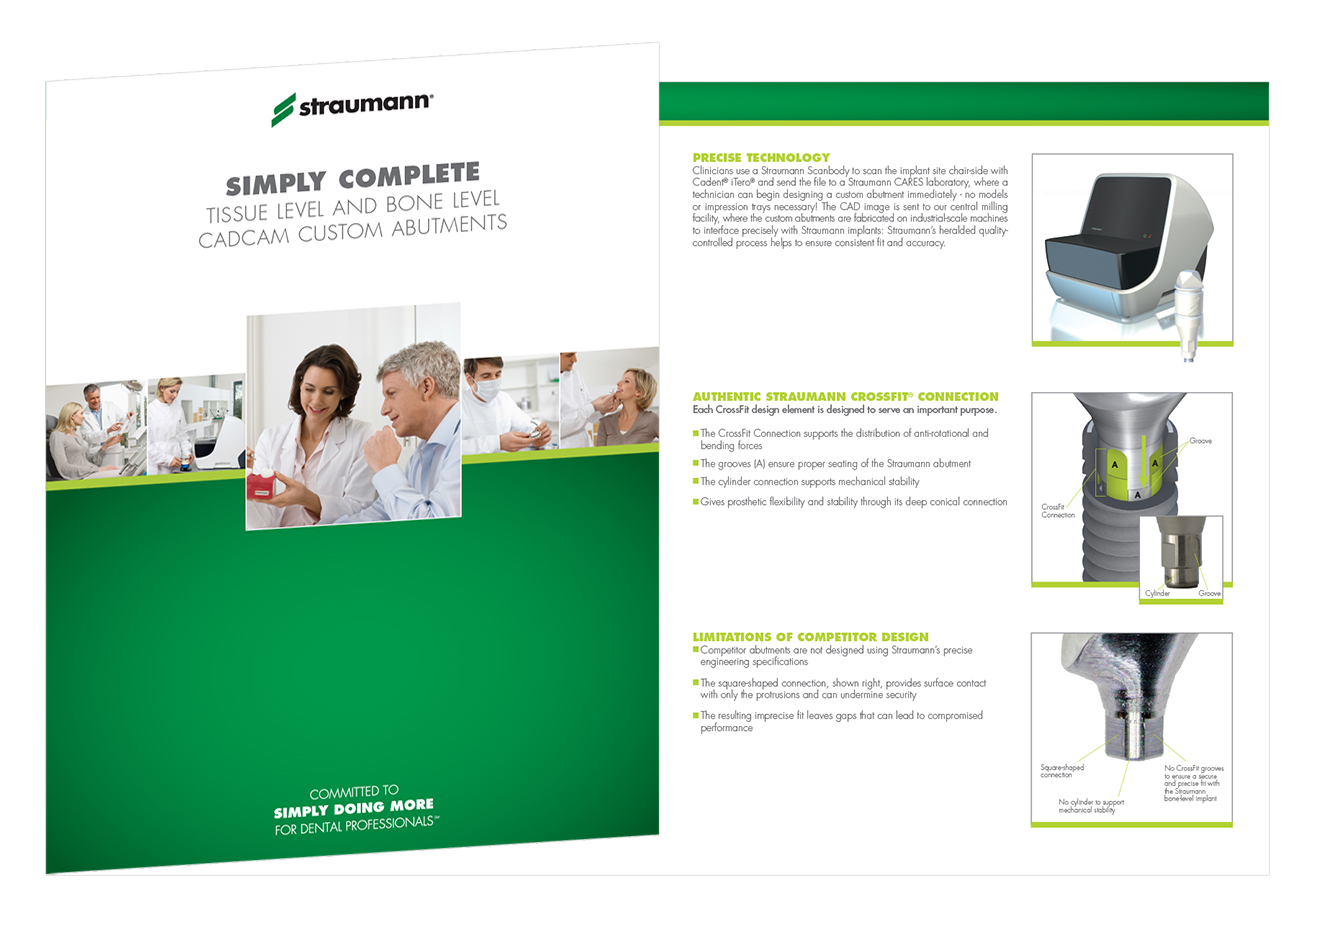 Simply Complete Straumann Product Brochure